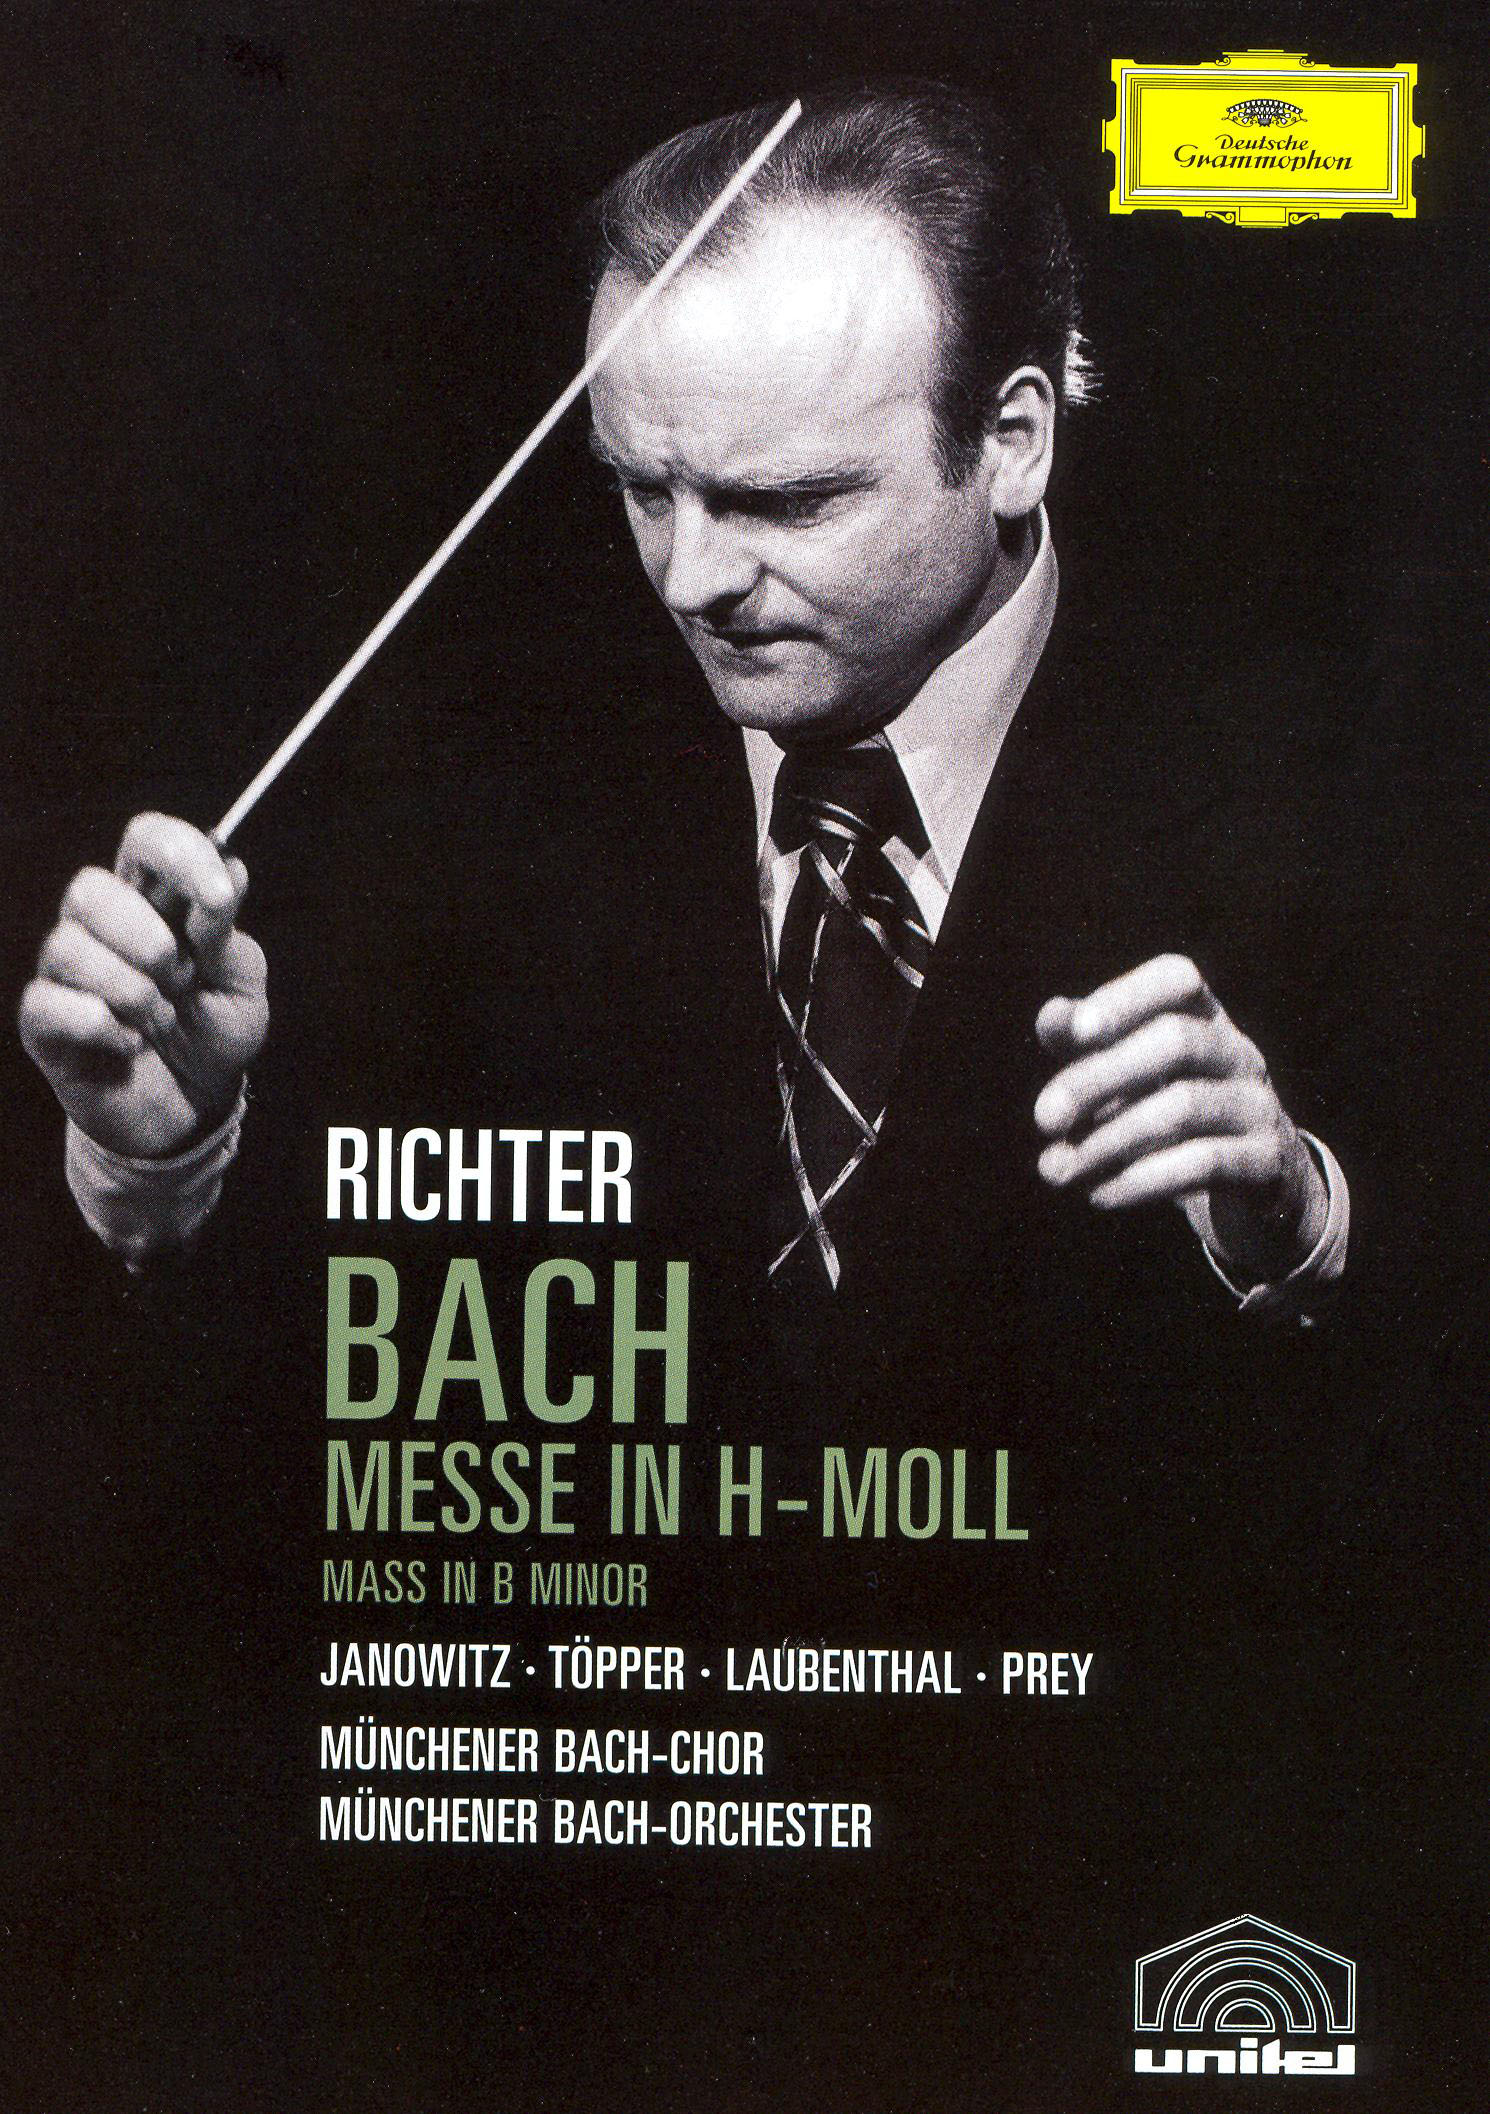 Richter: Mass in B Minor